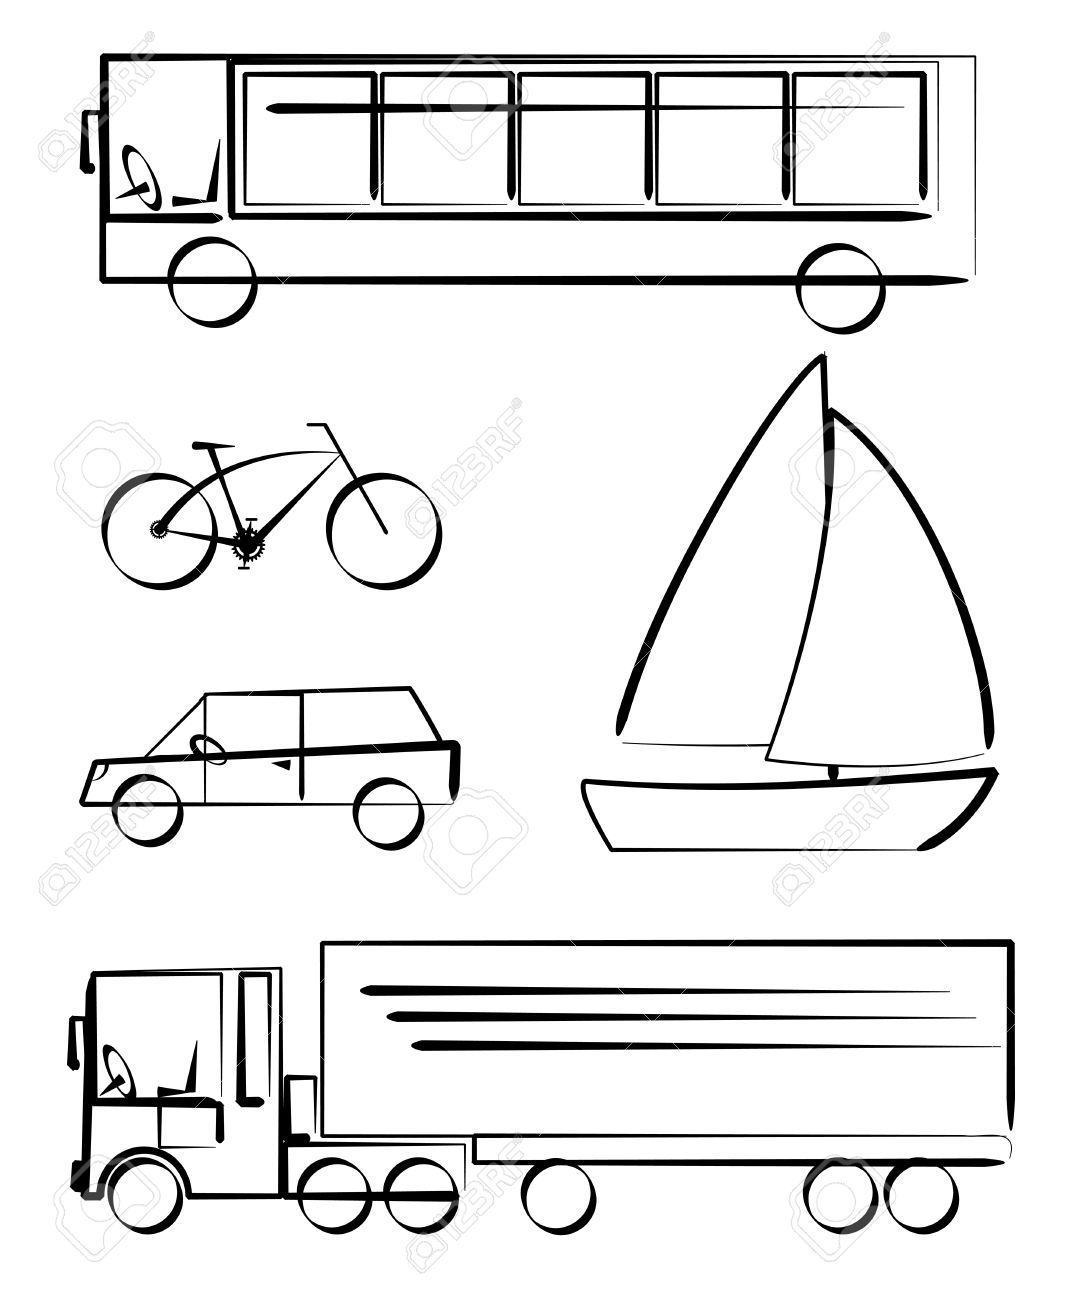 simple vetcor drawings of transportation vehicles royalty free